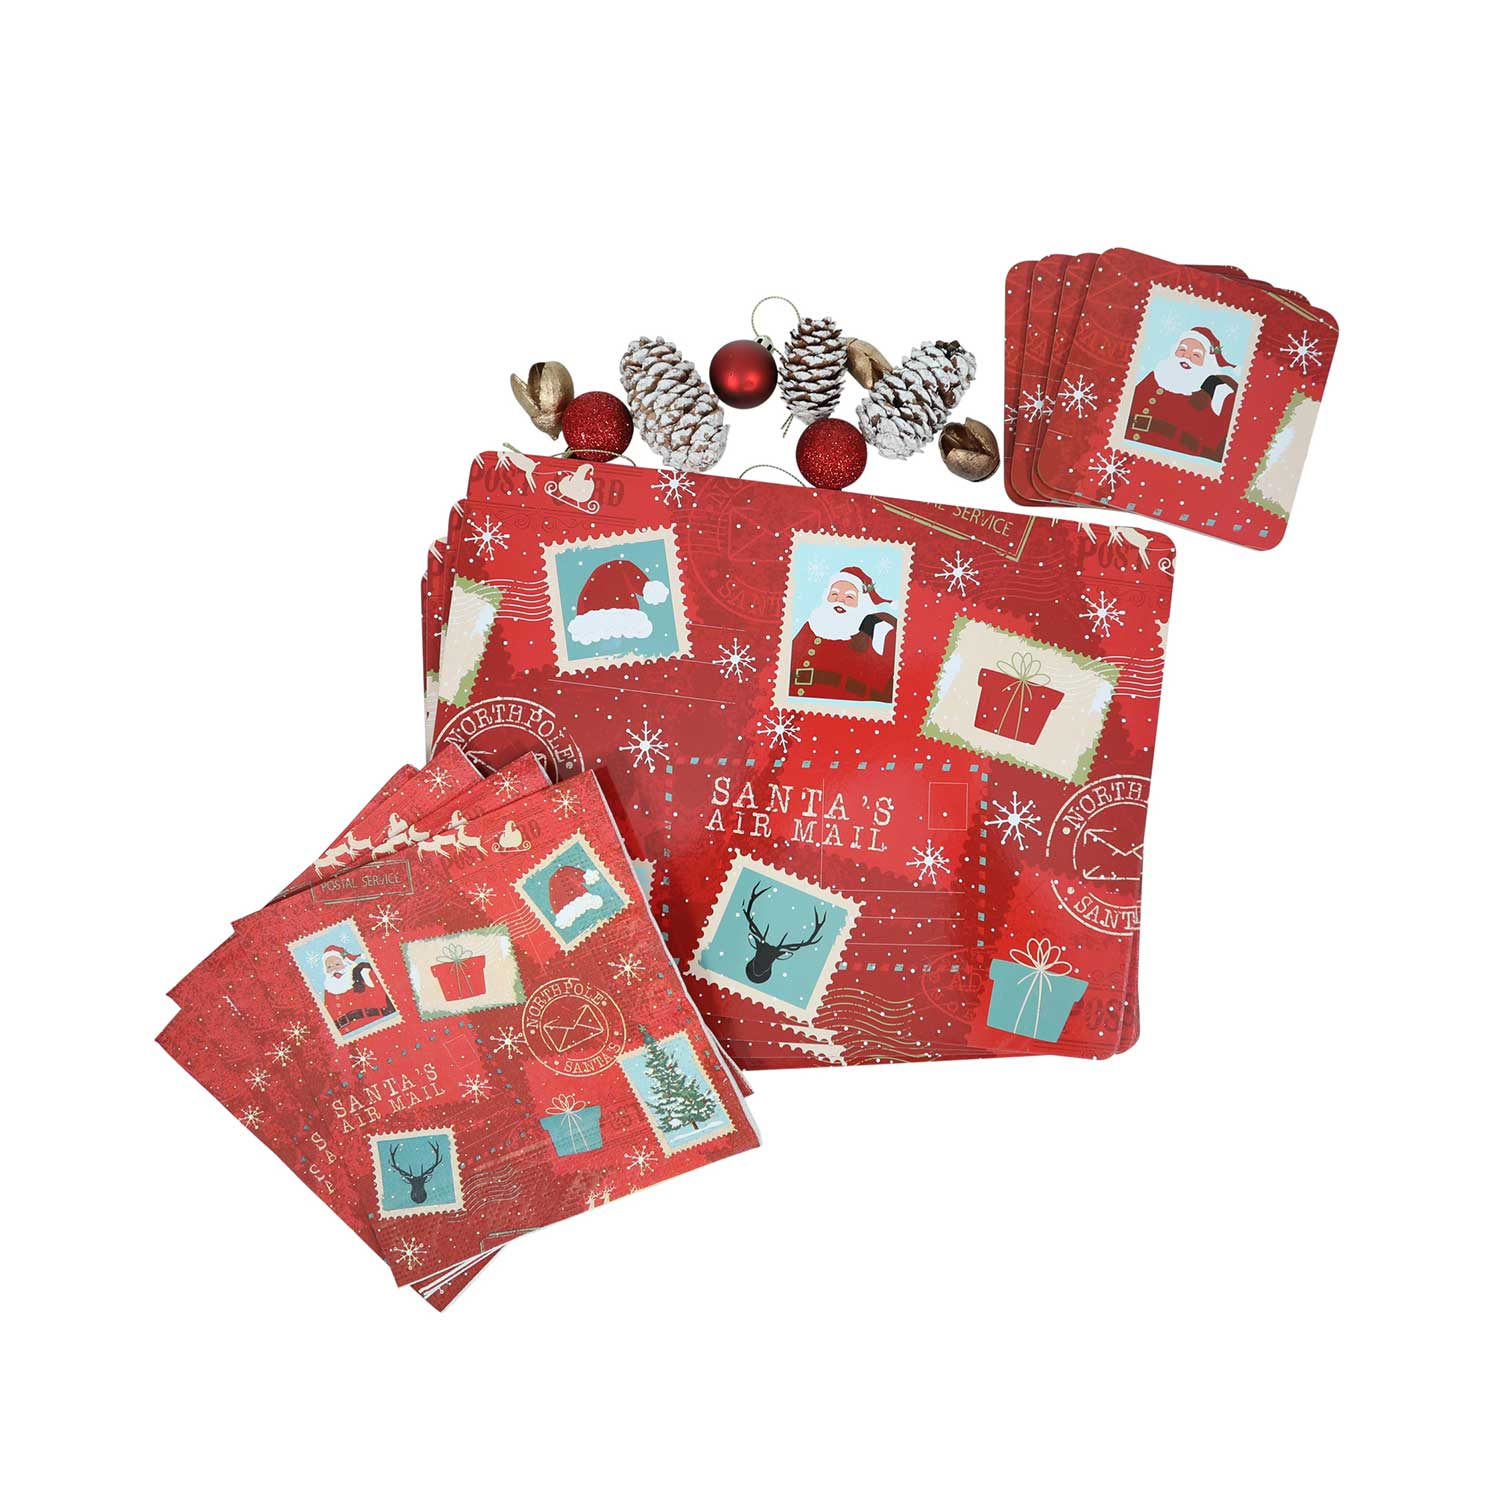 Northpole Express Mats & Coasters - 4 Pack